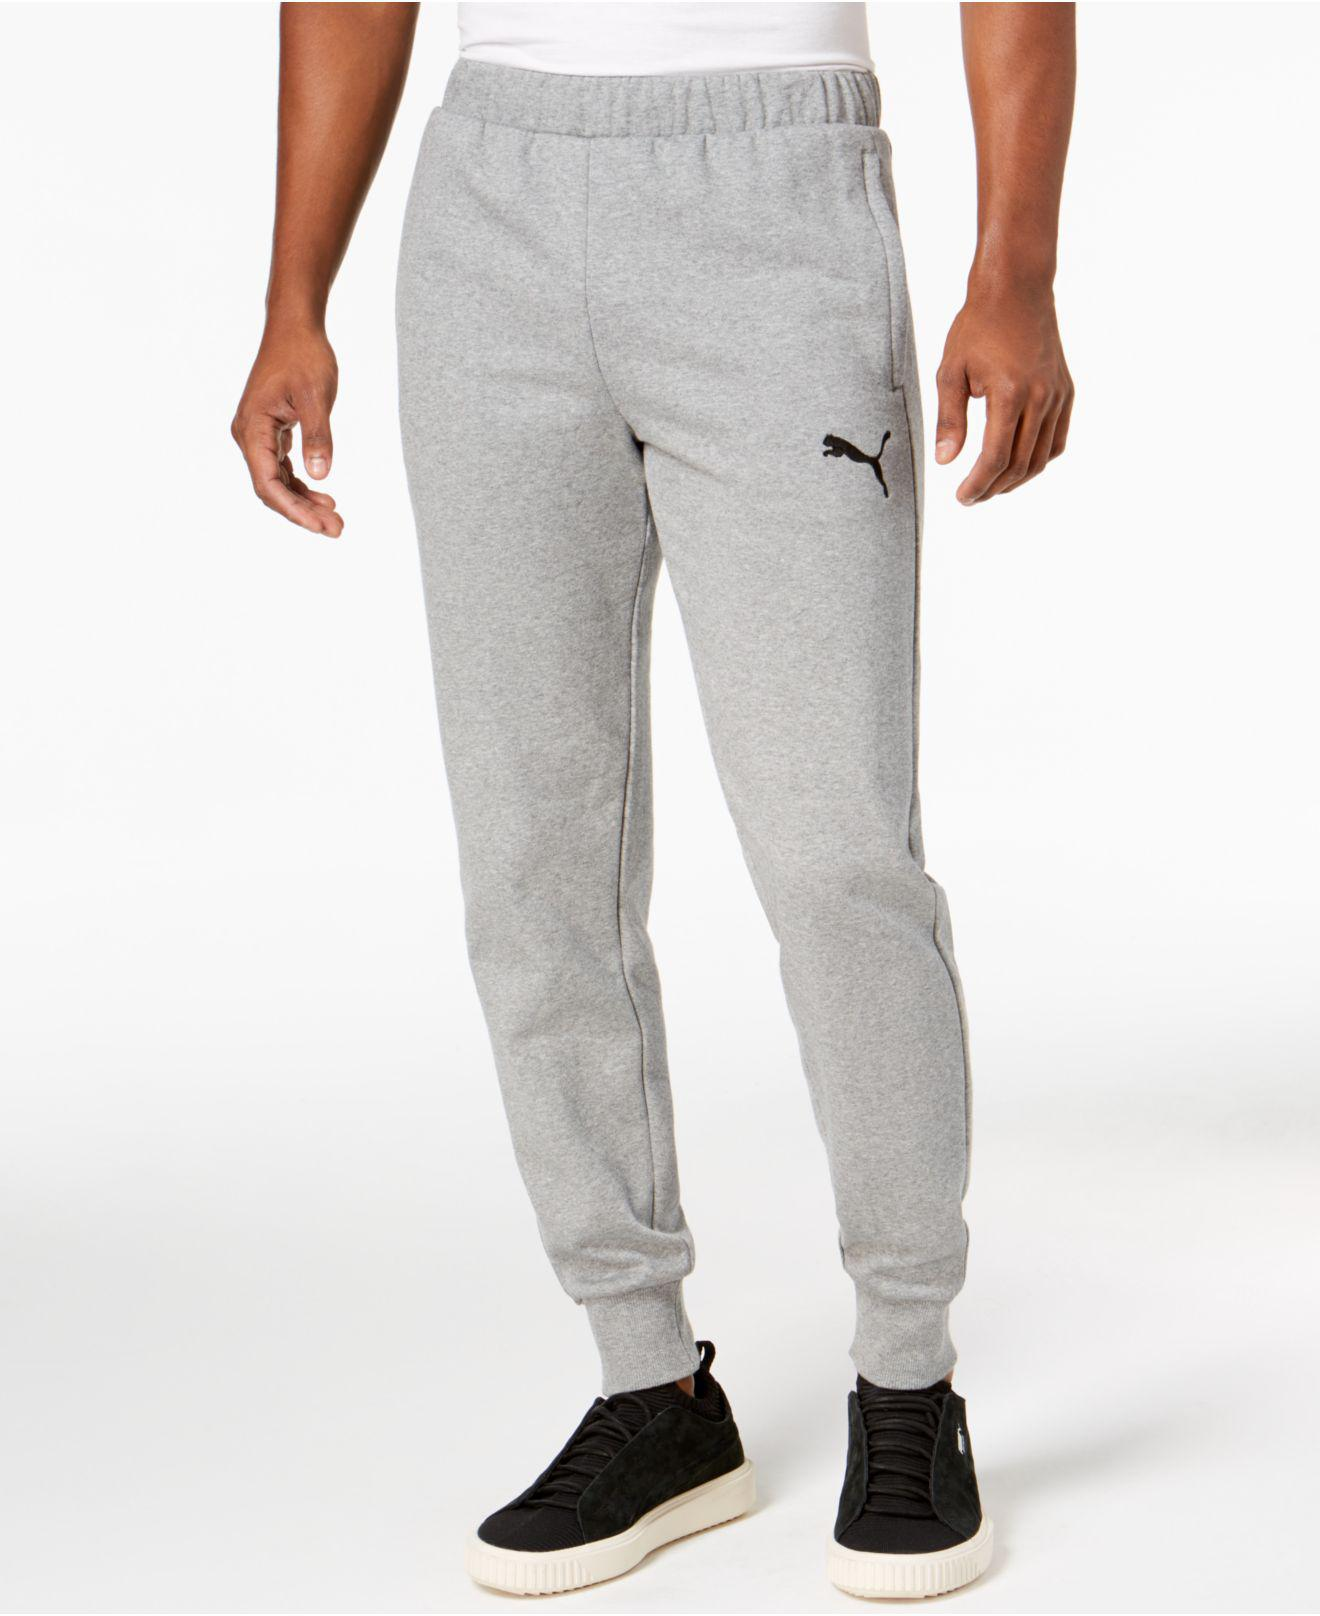 5f98643c154a Lyst - PUMA Fleece Joggers in Gray for Men